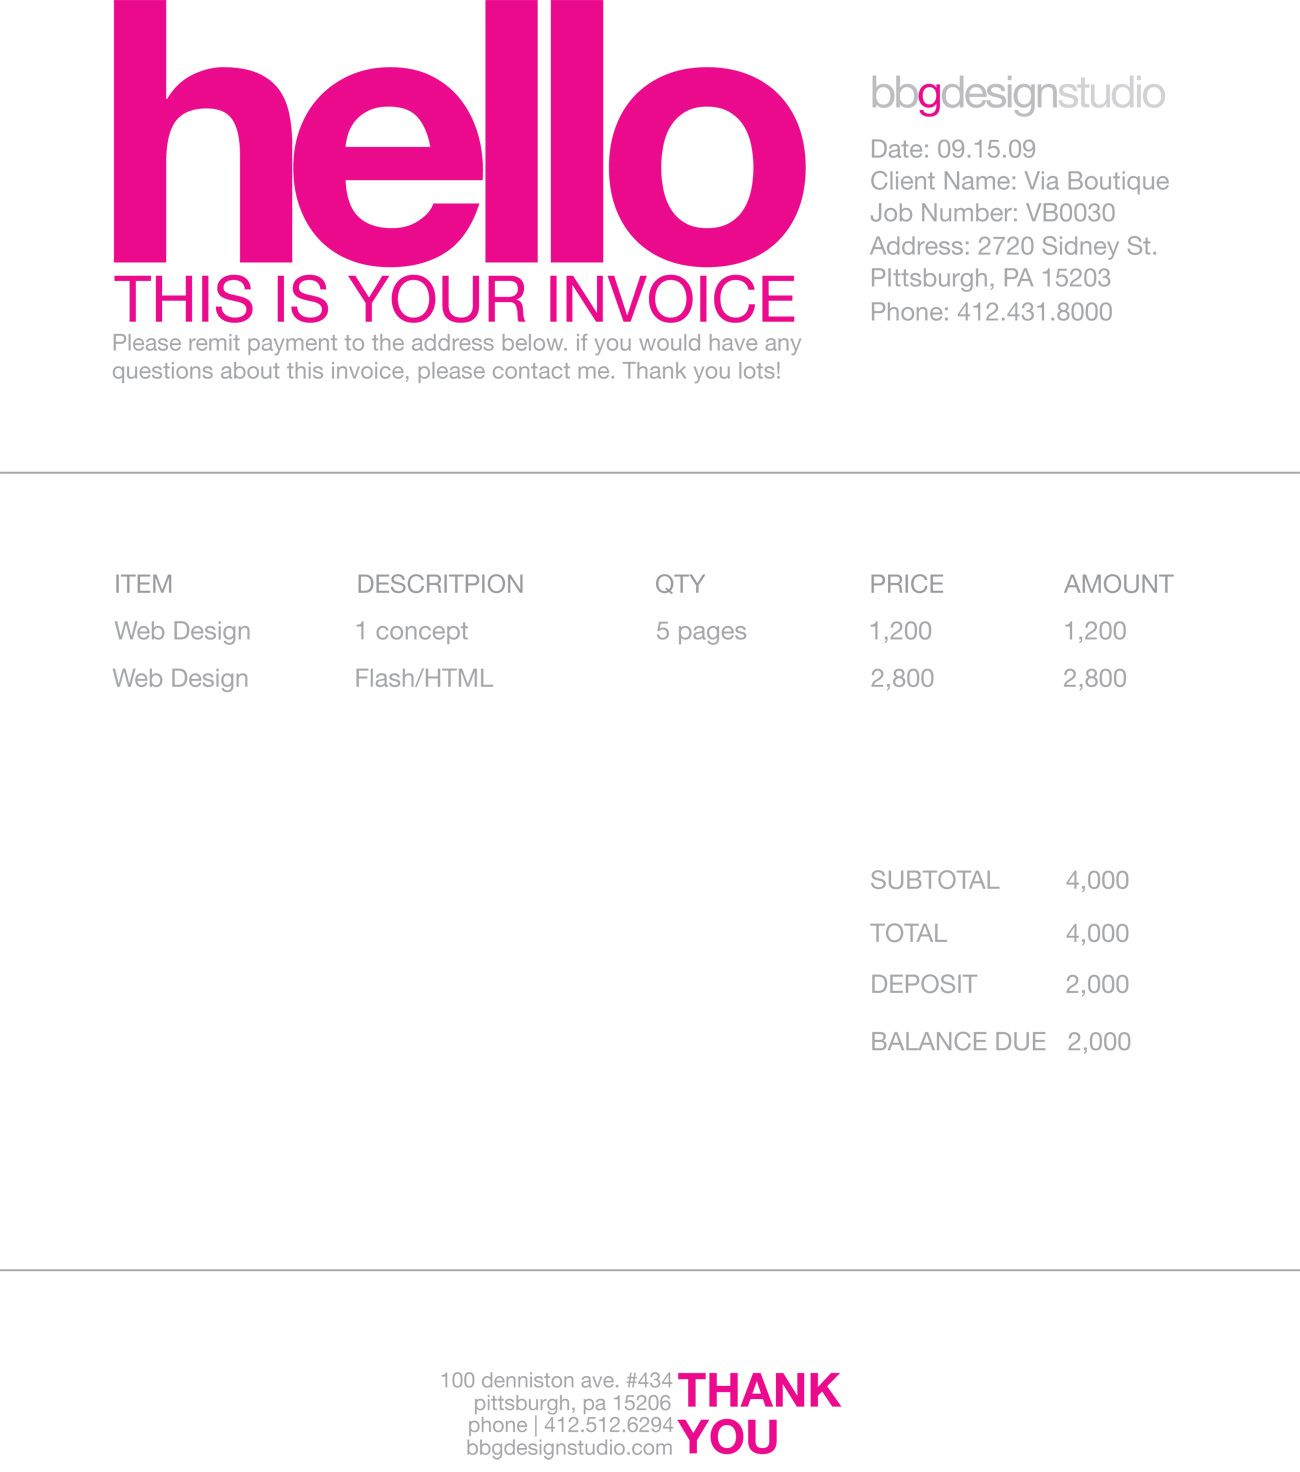 Floobydustus  Seductive  Images About Invoice Design On Pinterest With Fair Billing Invoice Template Pdf Besides Invoices Examples Furthermore Paperless Invoice With Archaic Check Invoice Also Paid Invoices In Addition Past Due Invoice Notice And Tacoma Invoice Price As Well As Invoice Letter Sample Additionally Invoice Tmeplate From Pinterestcom With Floobydustus  Fair  Images About Invoice Design On Pinterest With Archaic Billing Invoice Template Pdf Besides Invoices Examples Furthermore Paperless Invoice And Seductive Check Invoice Also Paid Invoices In Addition Past Due Invoice Notice From Pinterestcom